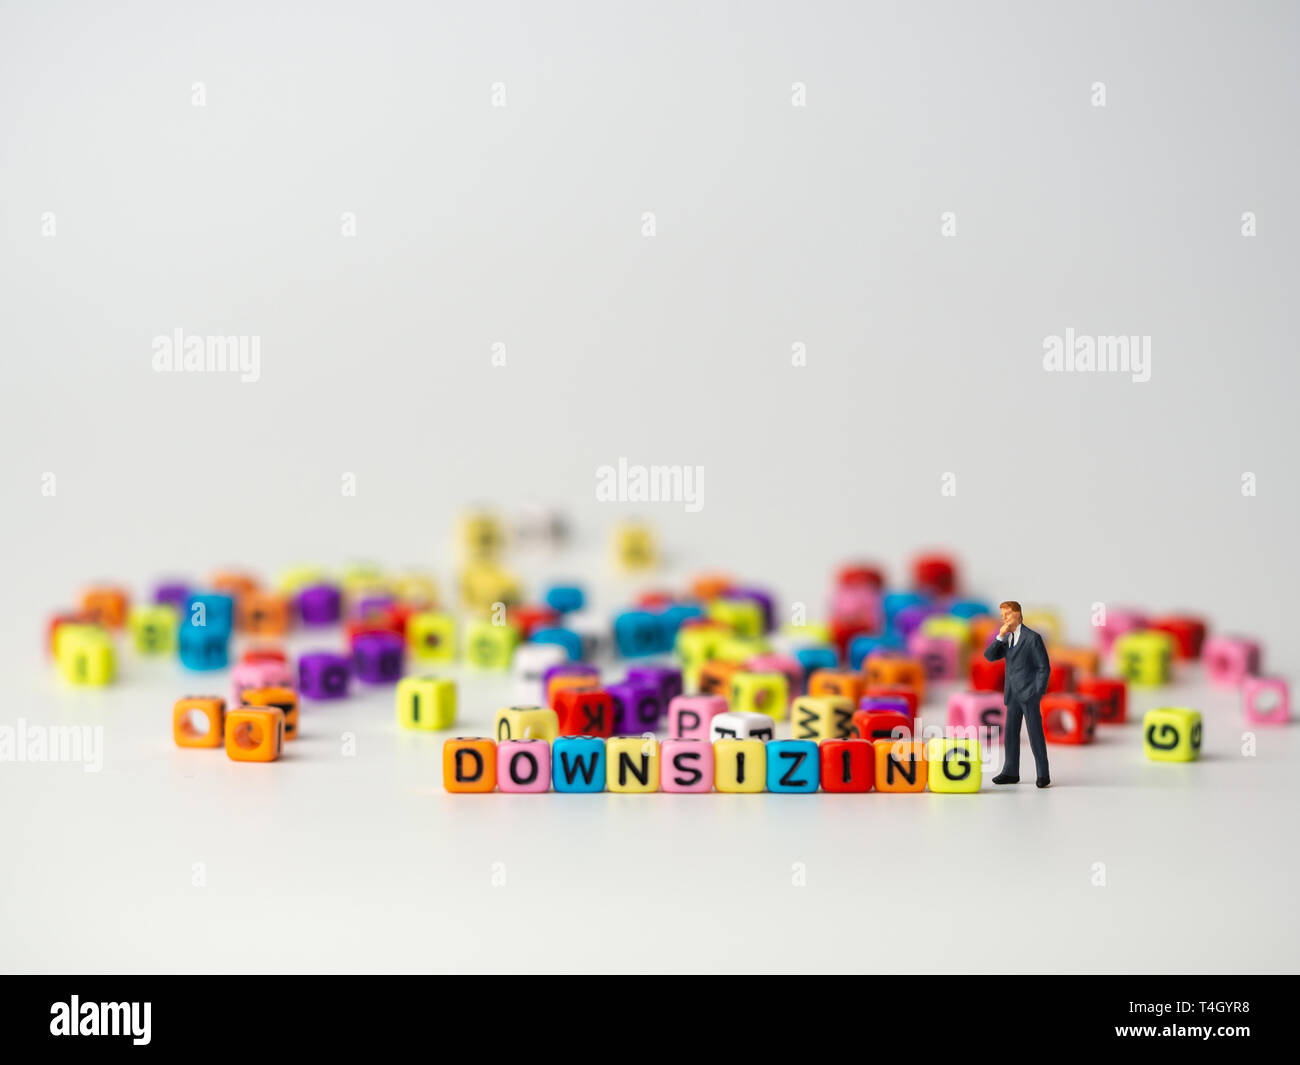 miniature figure businessman in dark blue suit standing backside of colorful of downsizing alphabet and thinking abount how to Reduce trade, spend and - Stock Image